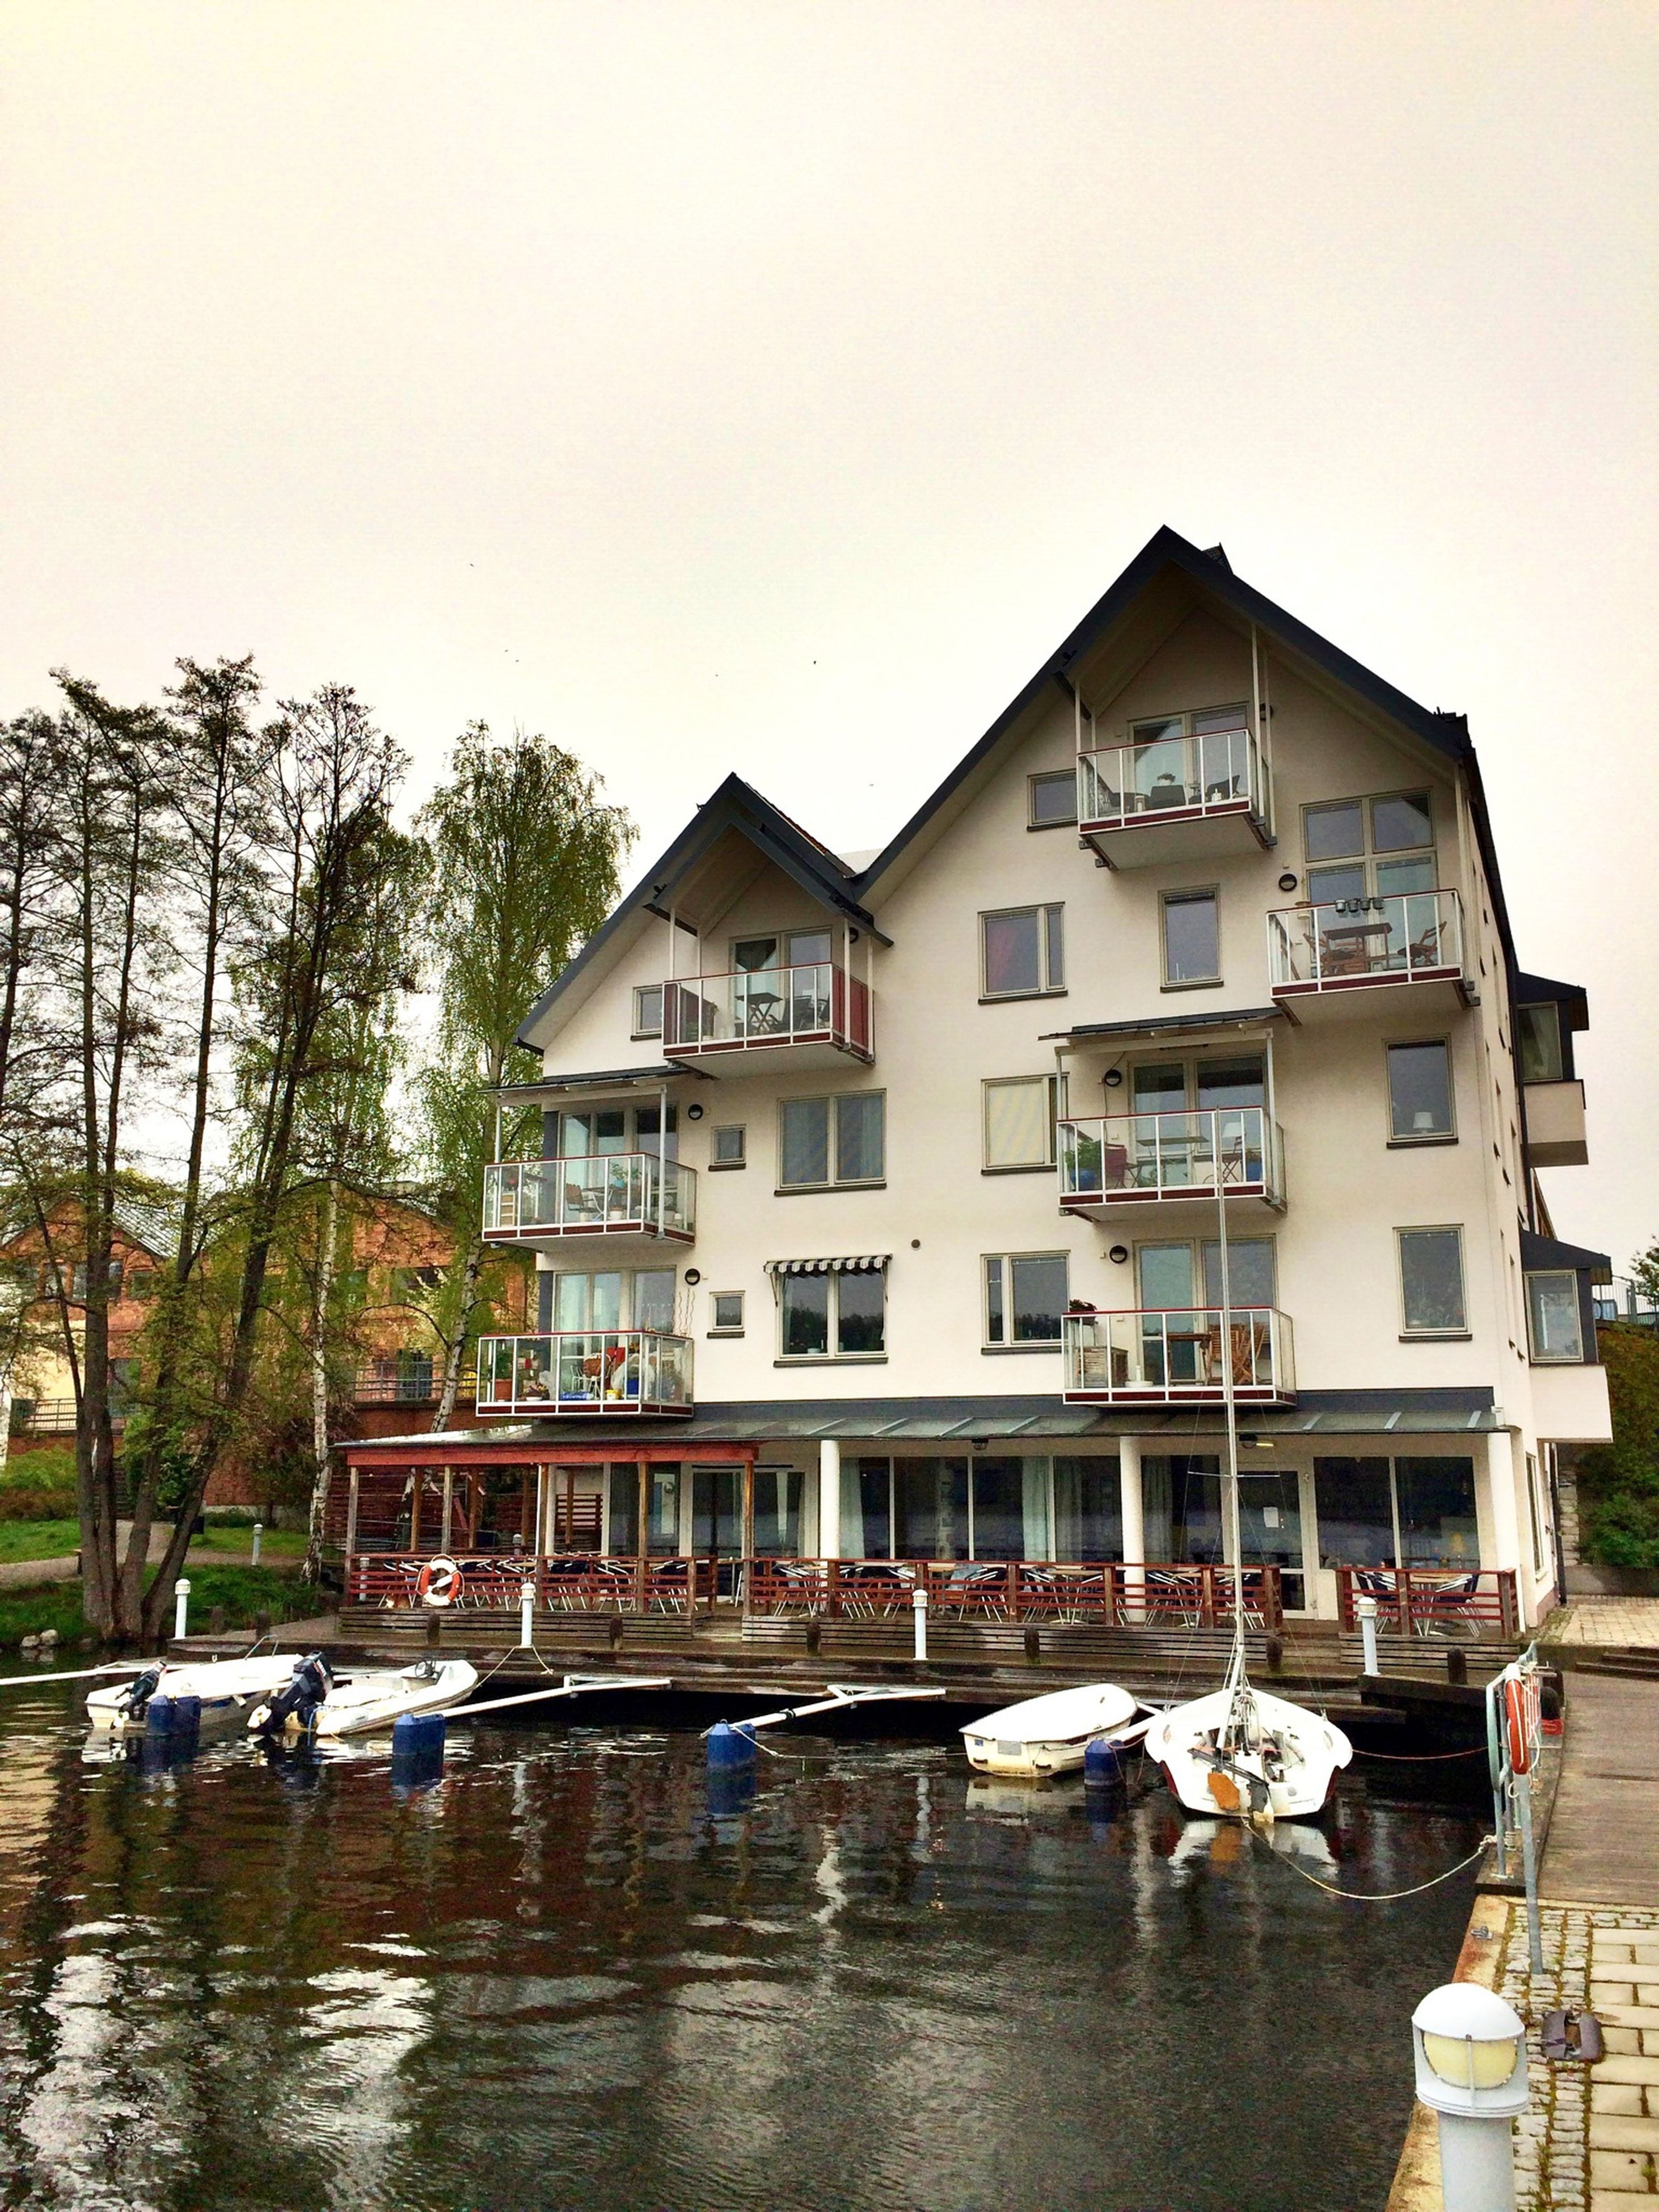 building exterior, architecture, built structure, water, nautical vessel, waterfront, moored, clear sky, boat, transportation, mode of transport, house, reflection, residential building, tree, canal, residential structure, building, day, river